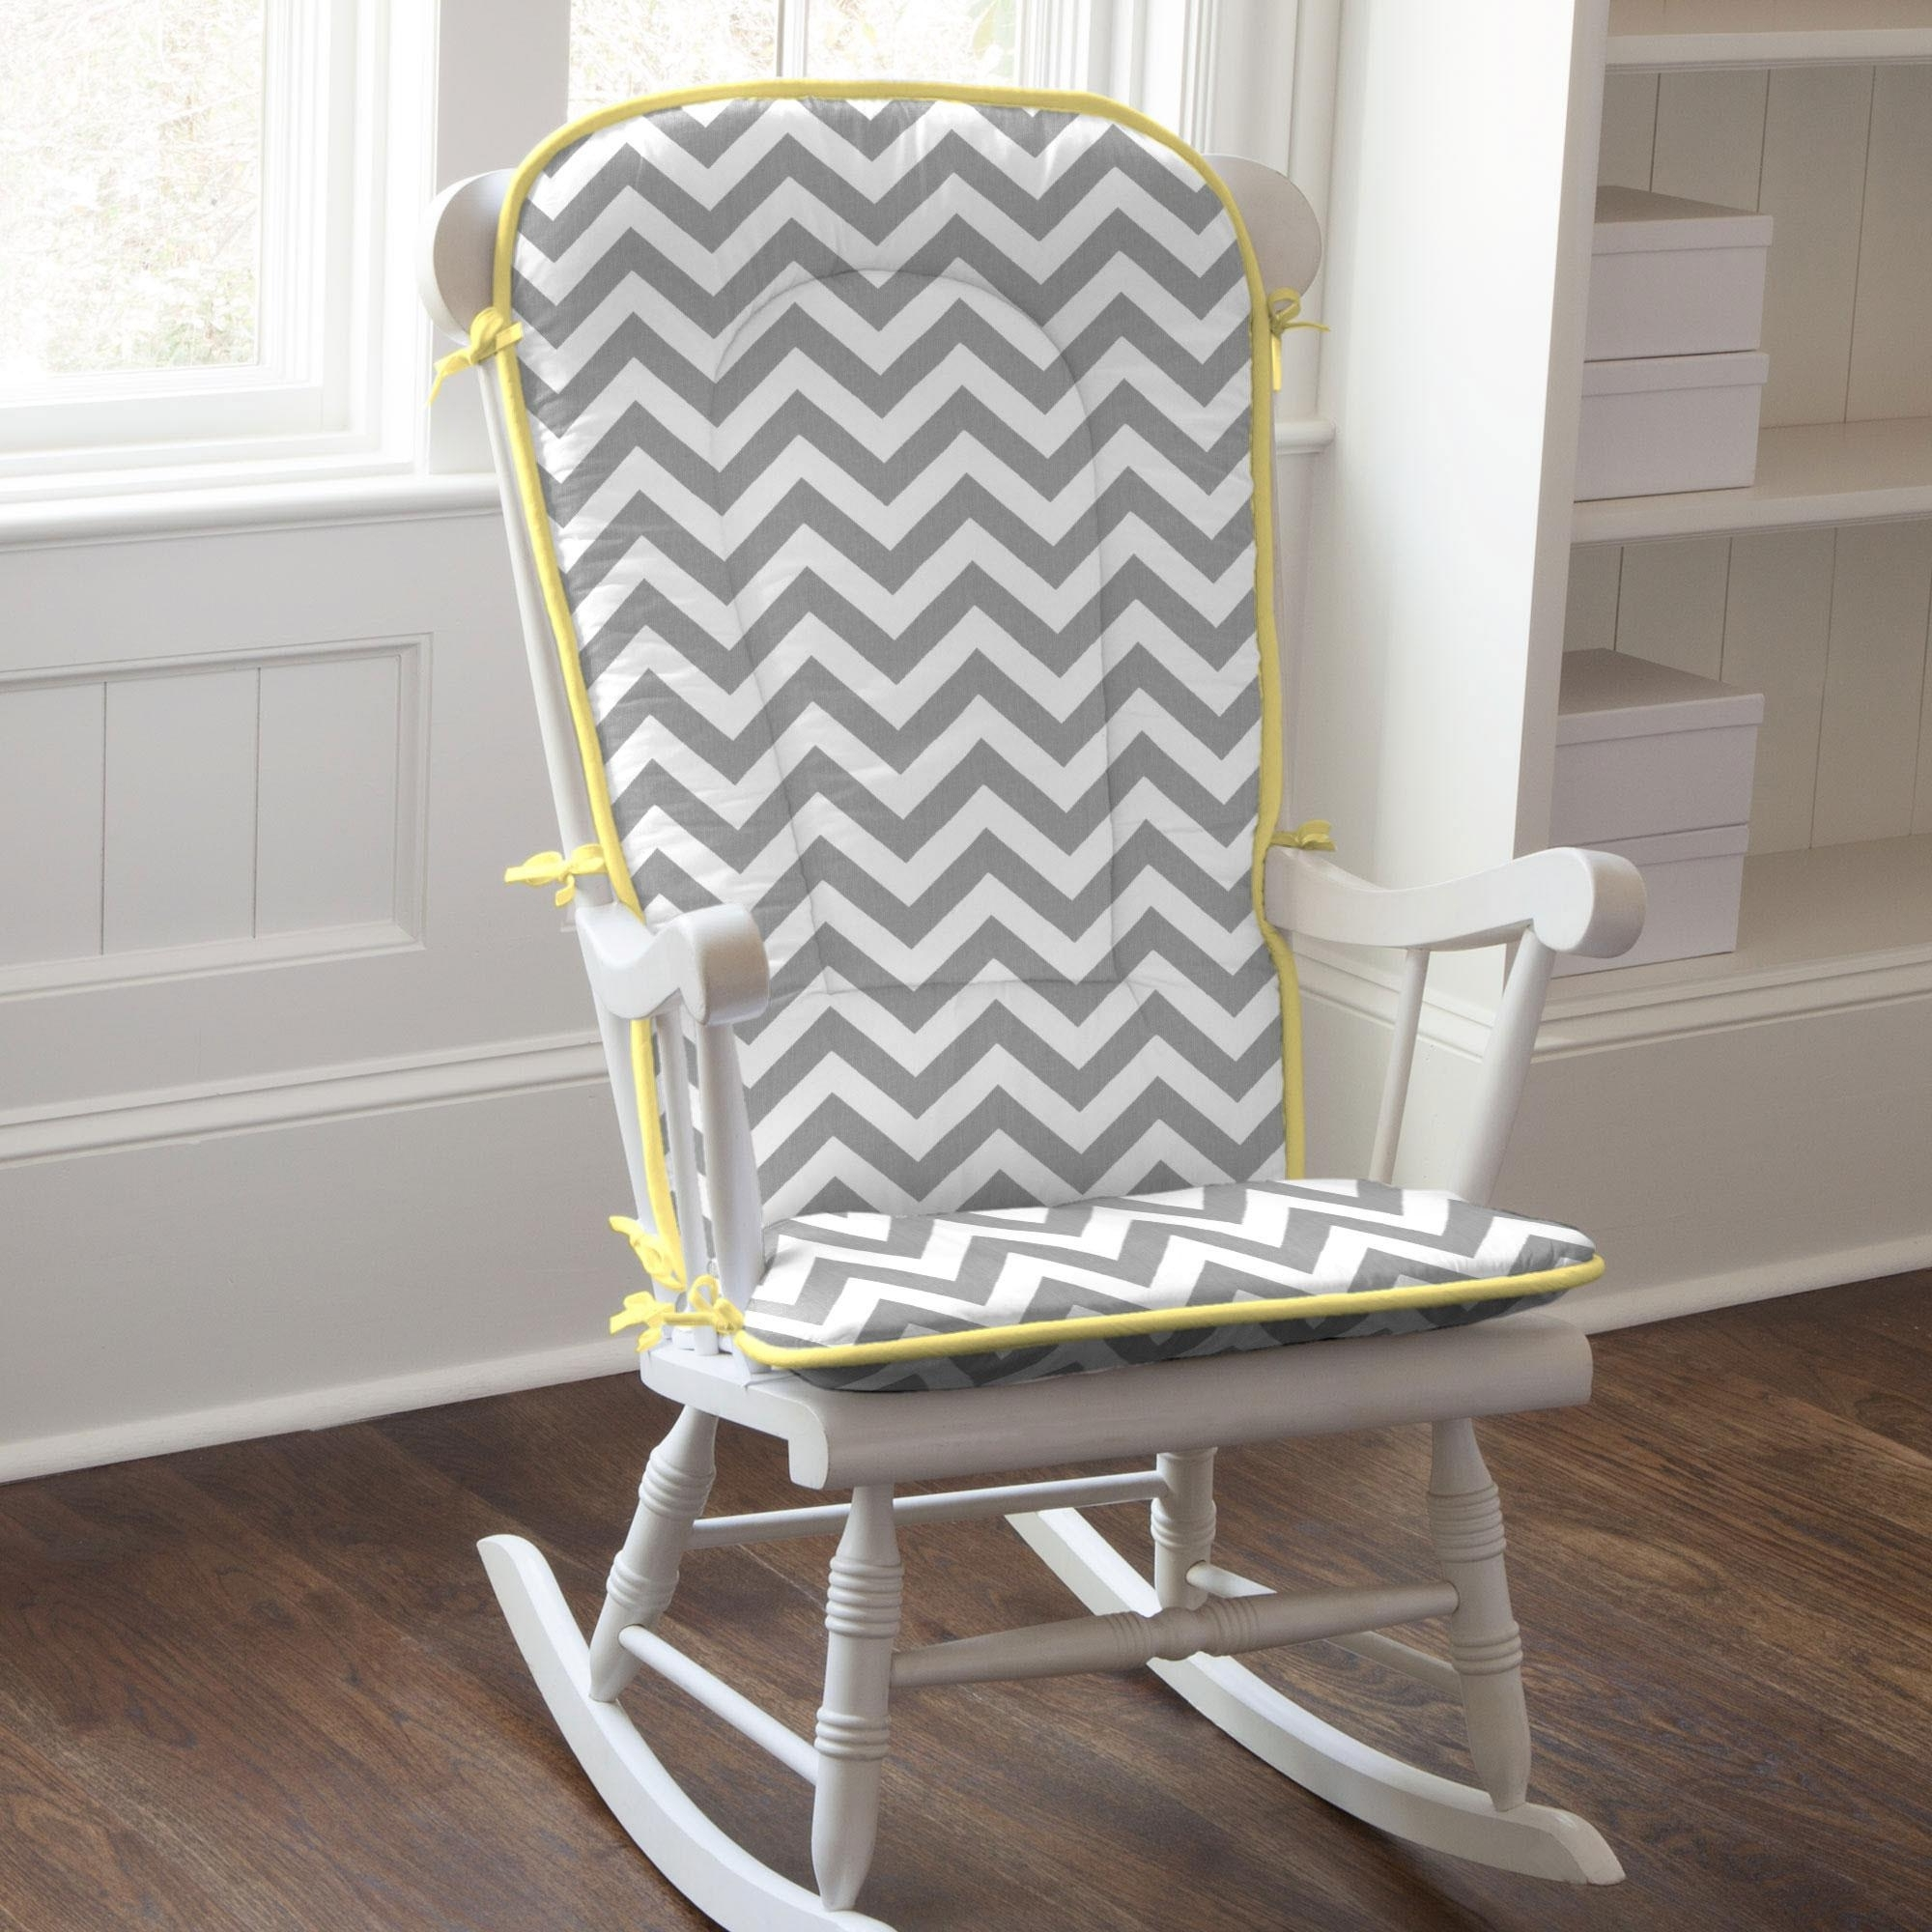 Carousel Designs For Yellow Outdoor Rocking Chairs (View 7 of 20)